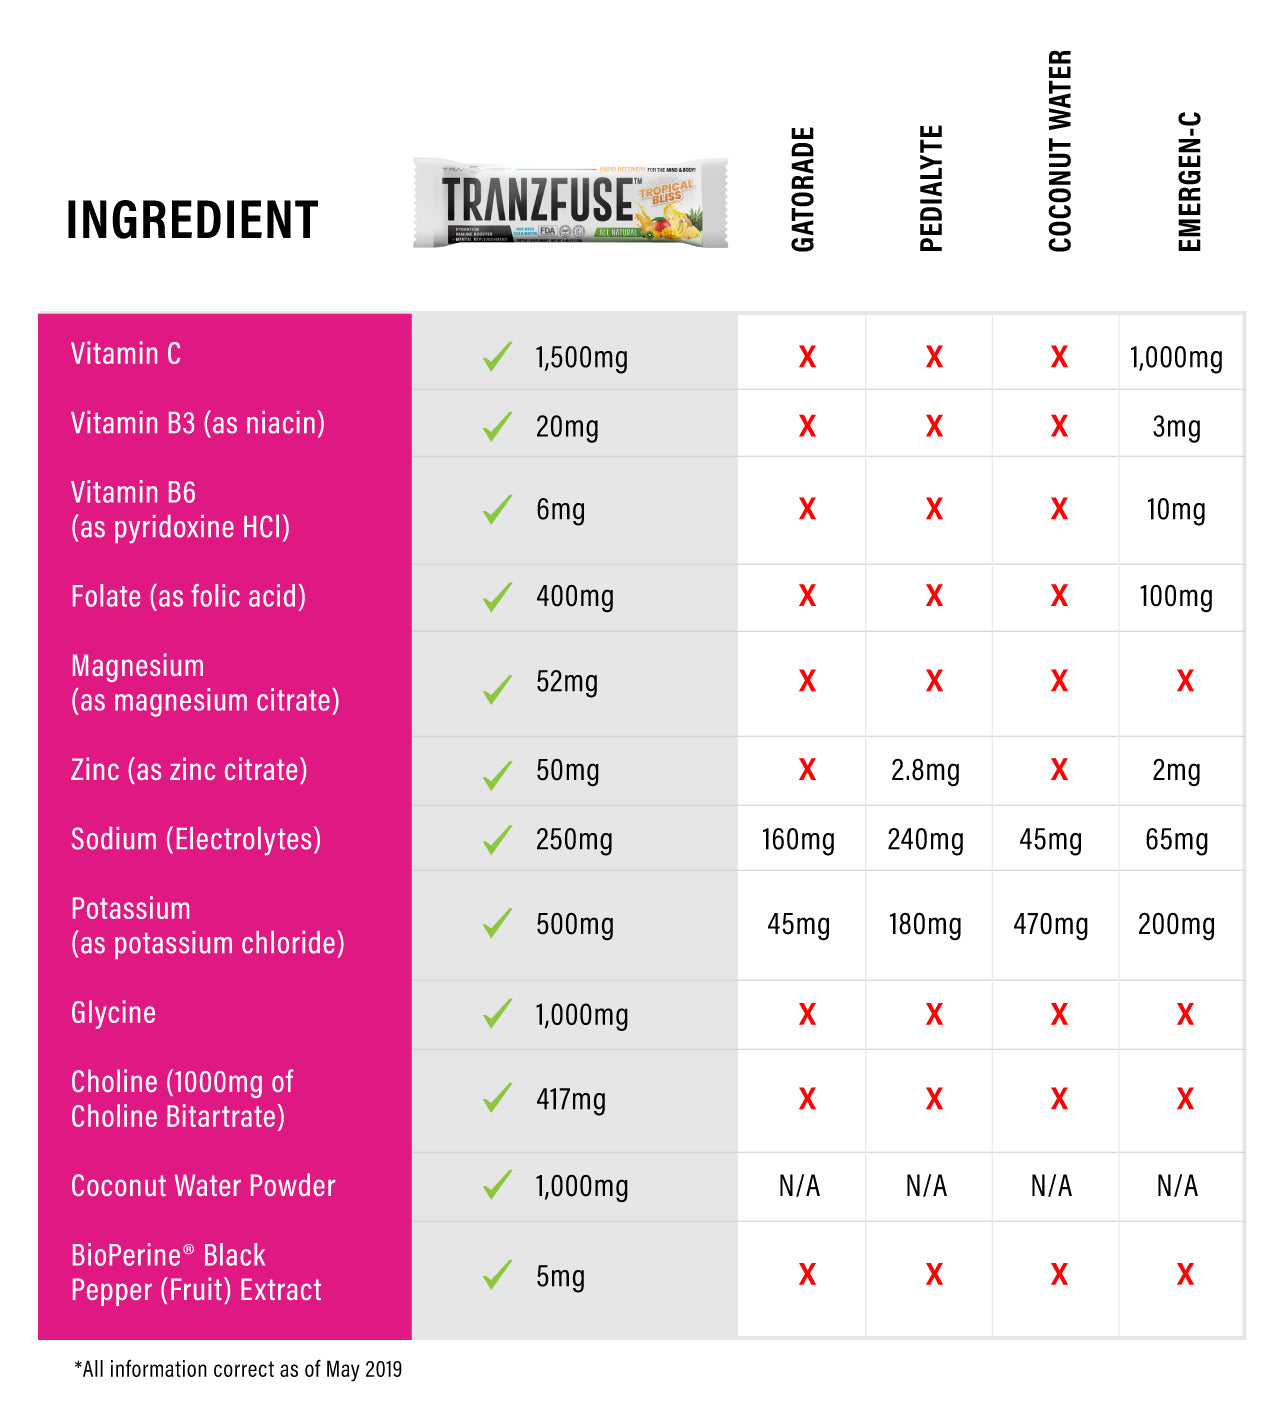 Tranzfuse Comparison Ingredients